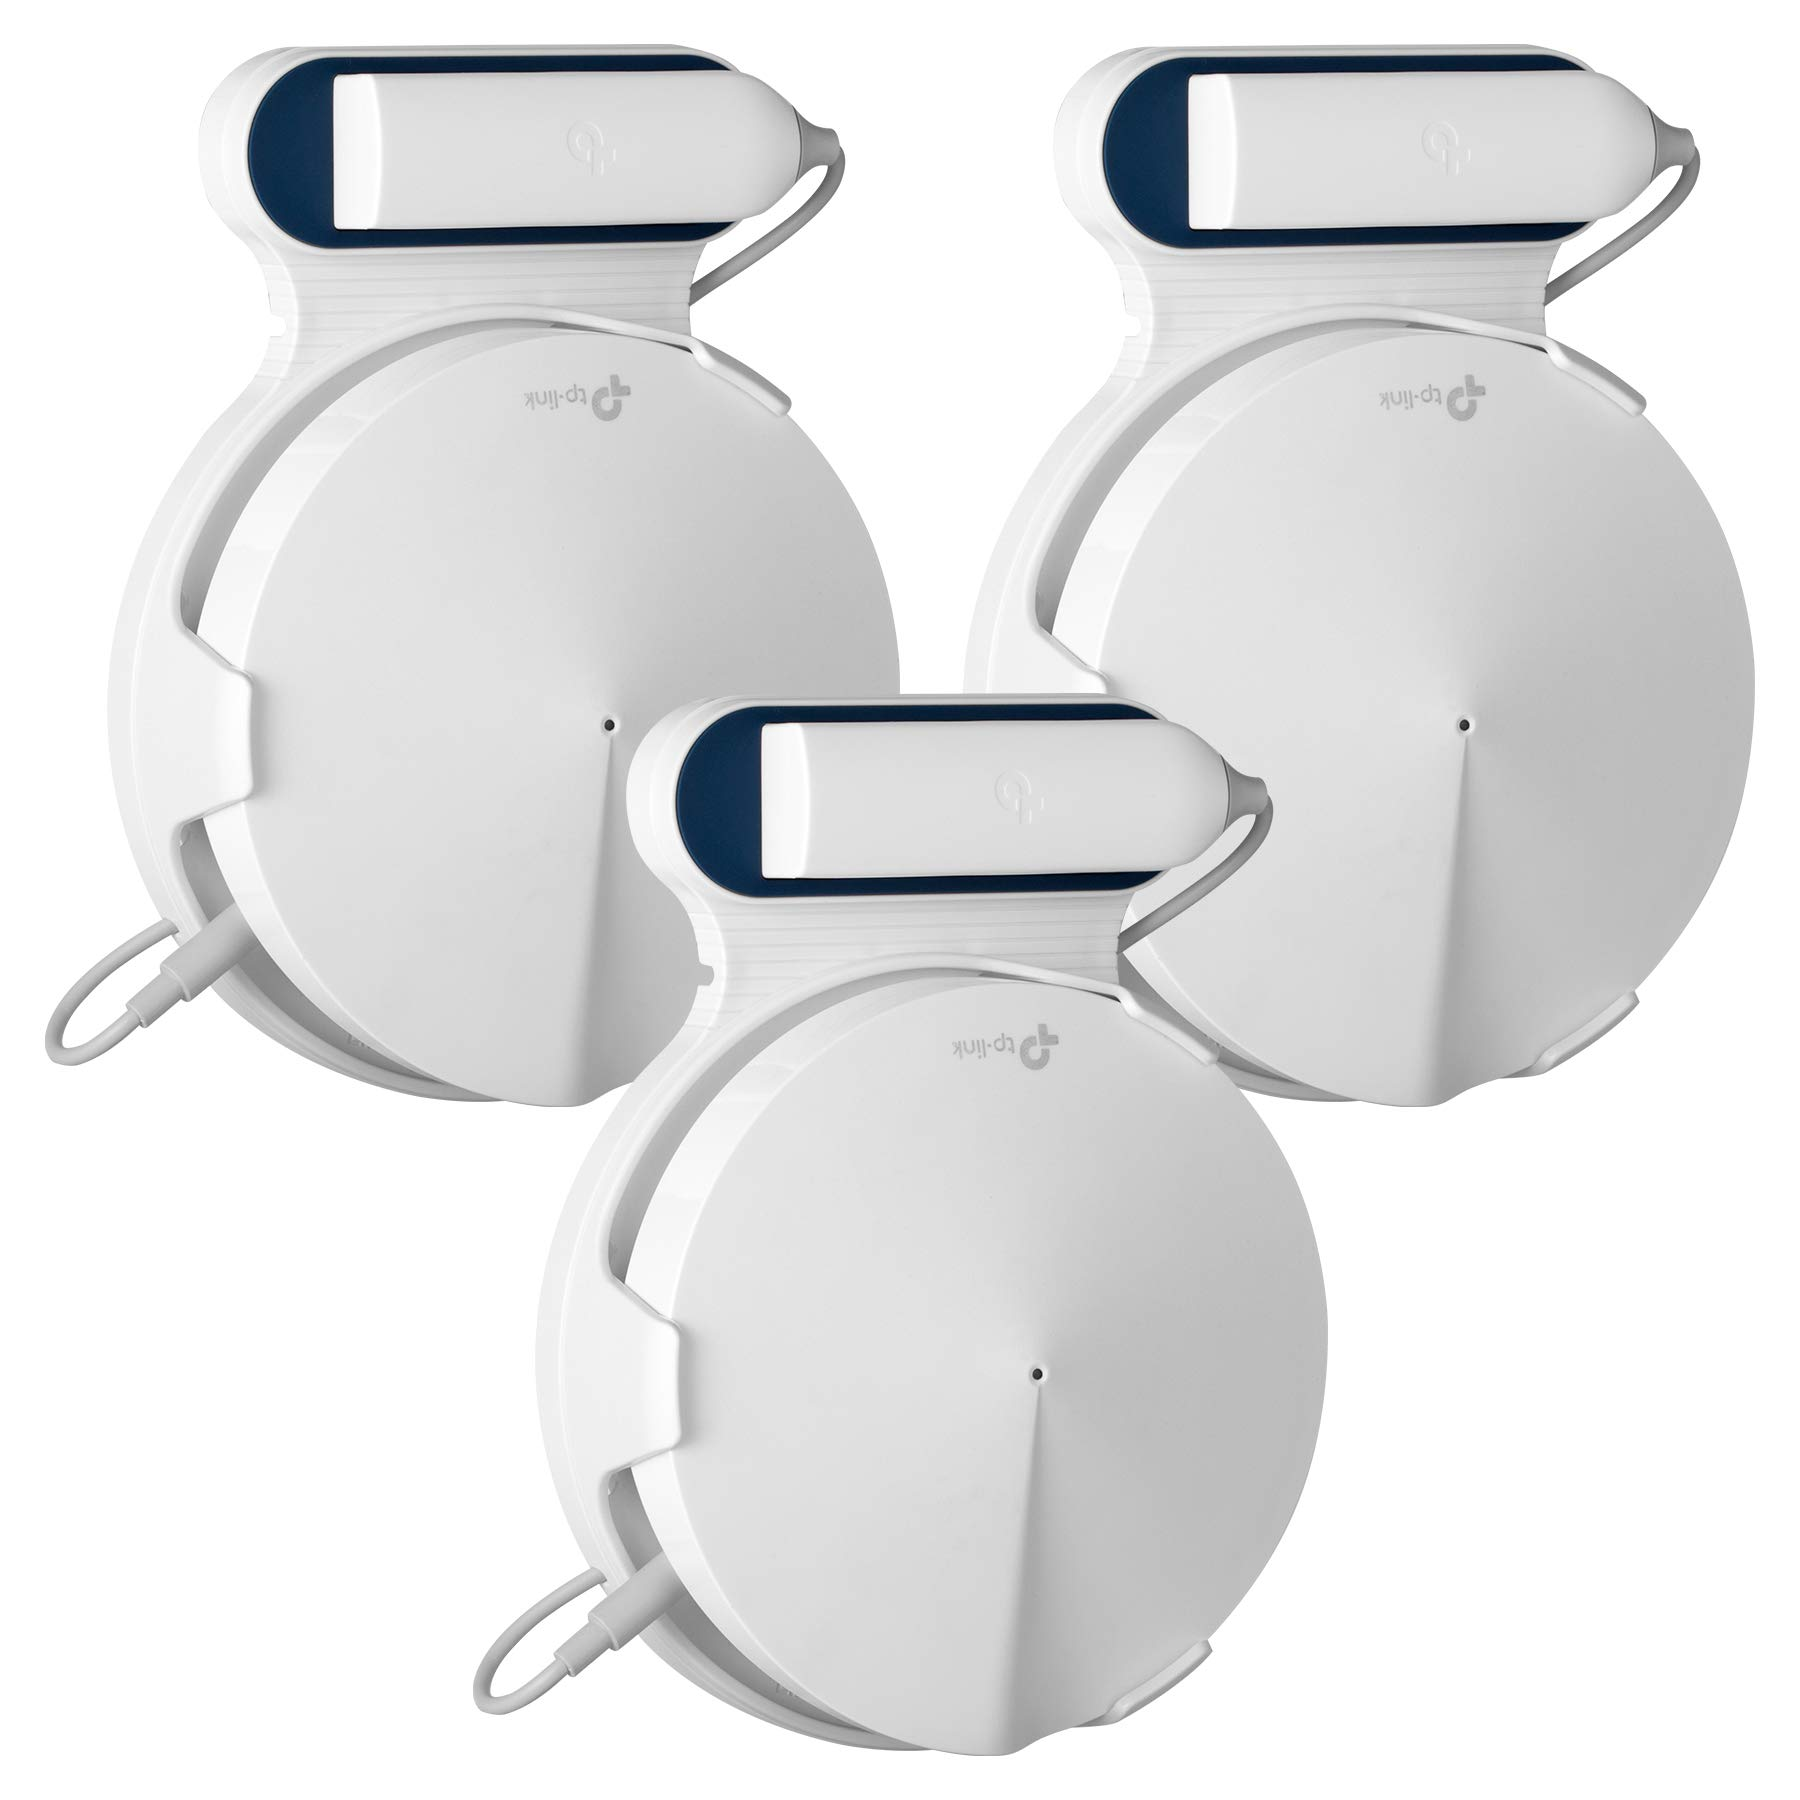 STANSTAR Wall Mount for TP-Link Deco M9 Plus Home Mesh WiFi System, Sturdy Brackets, Easy Moved, Space Saving,Without Messy Wires and Screws(3 Pack) by STANSTAR